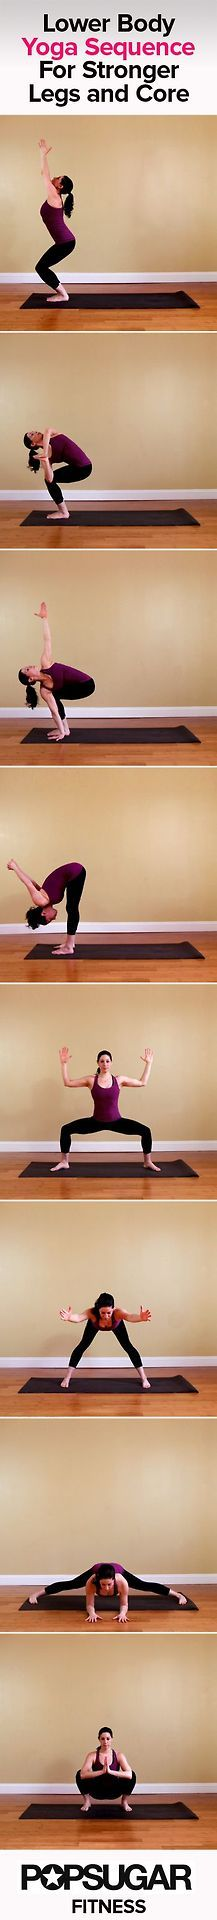 lower body yoga sequence